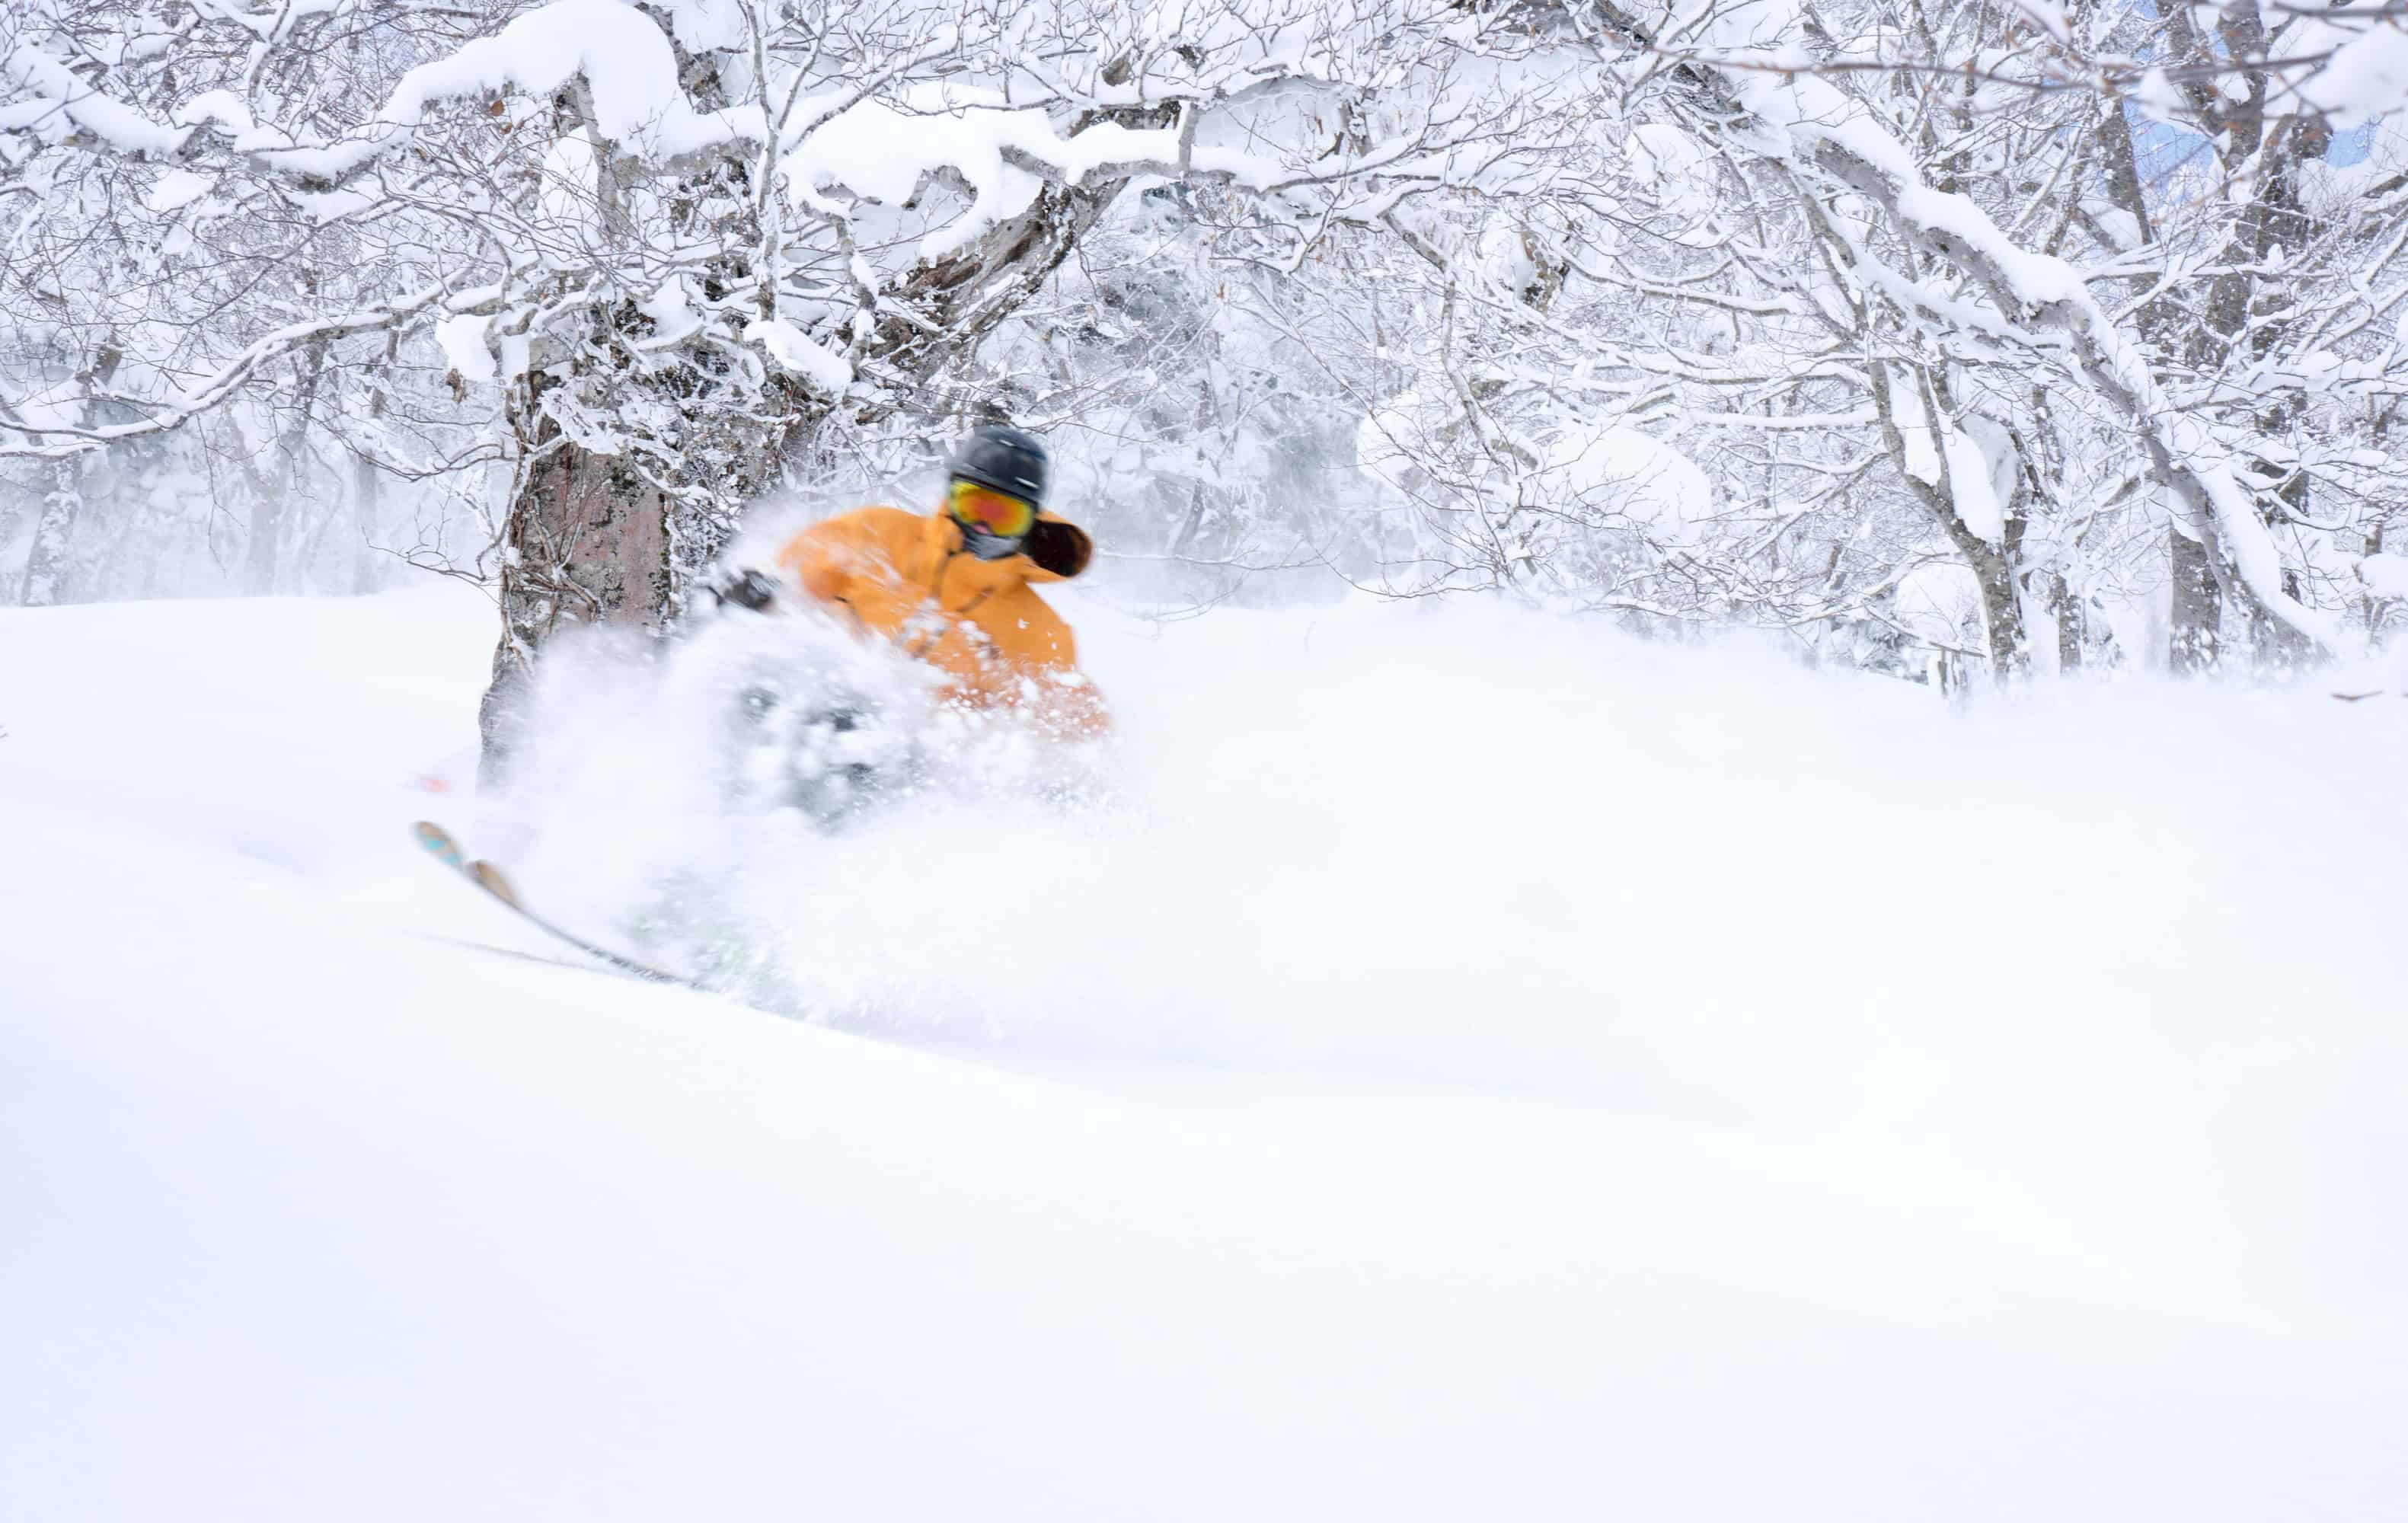 appi kogen snow reports, weather, cameras | mountainwatch